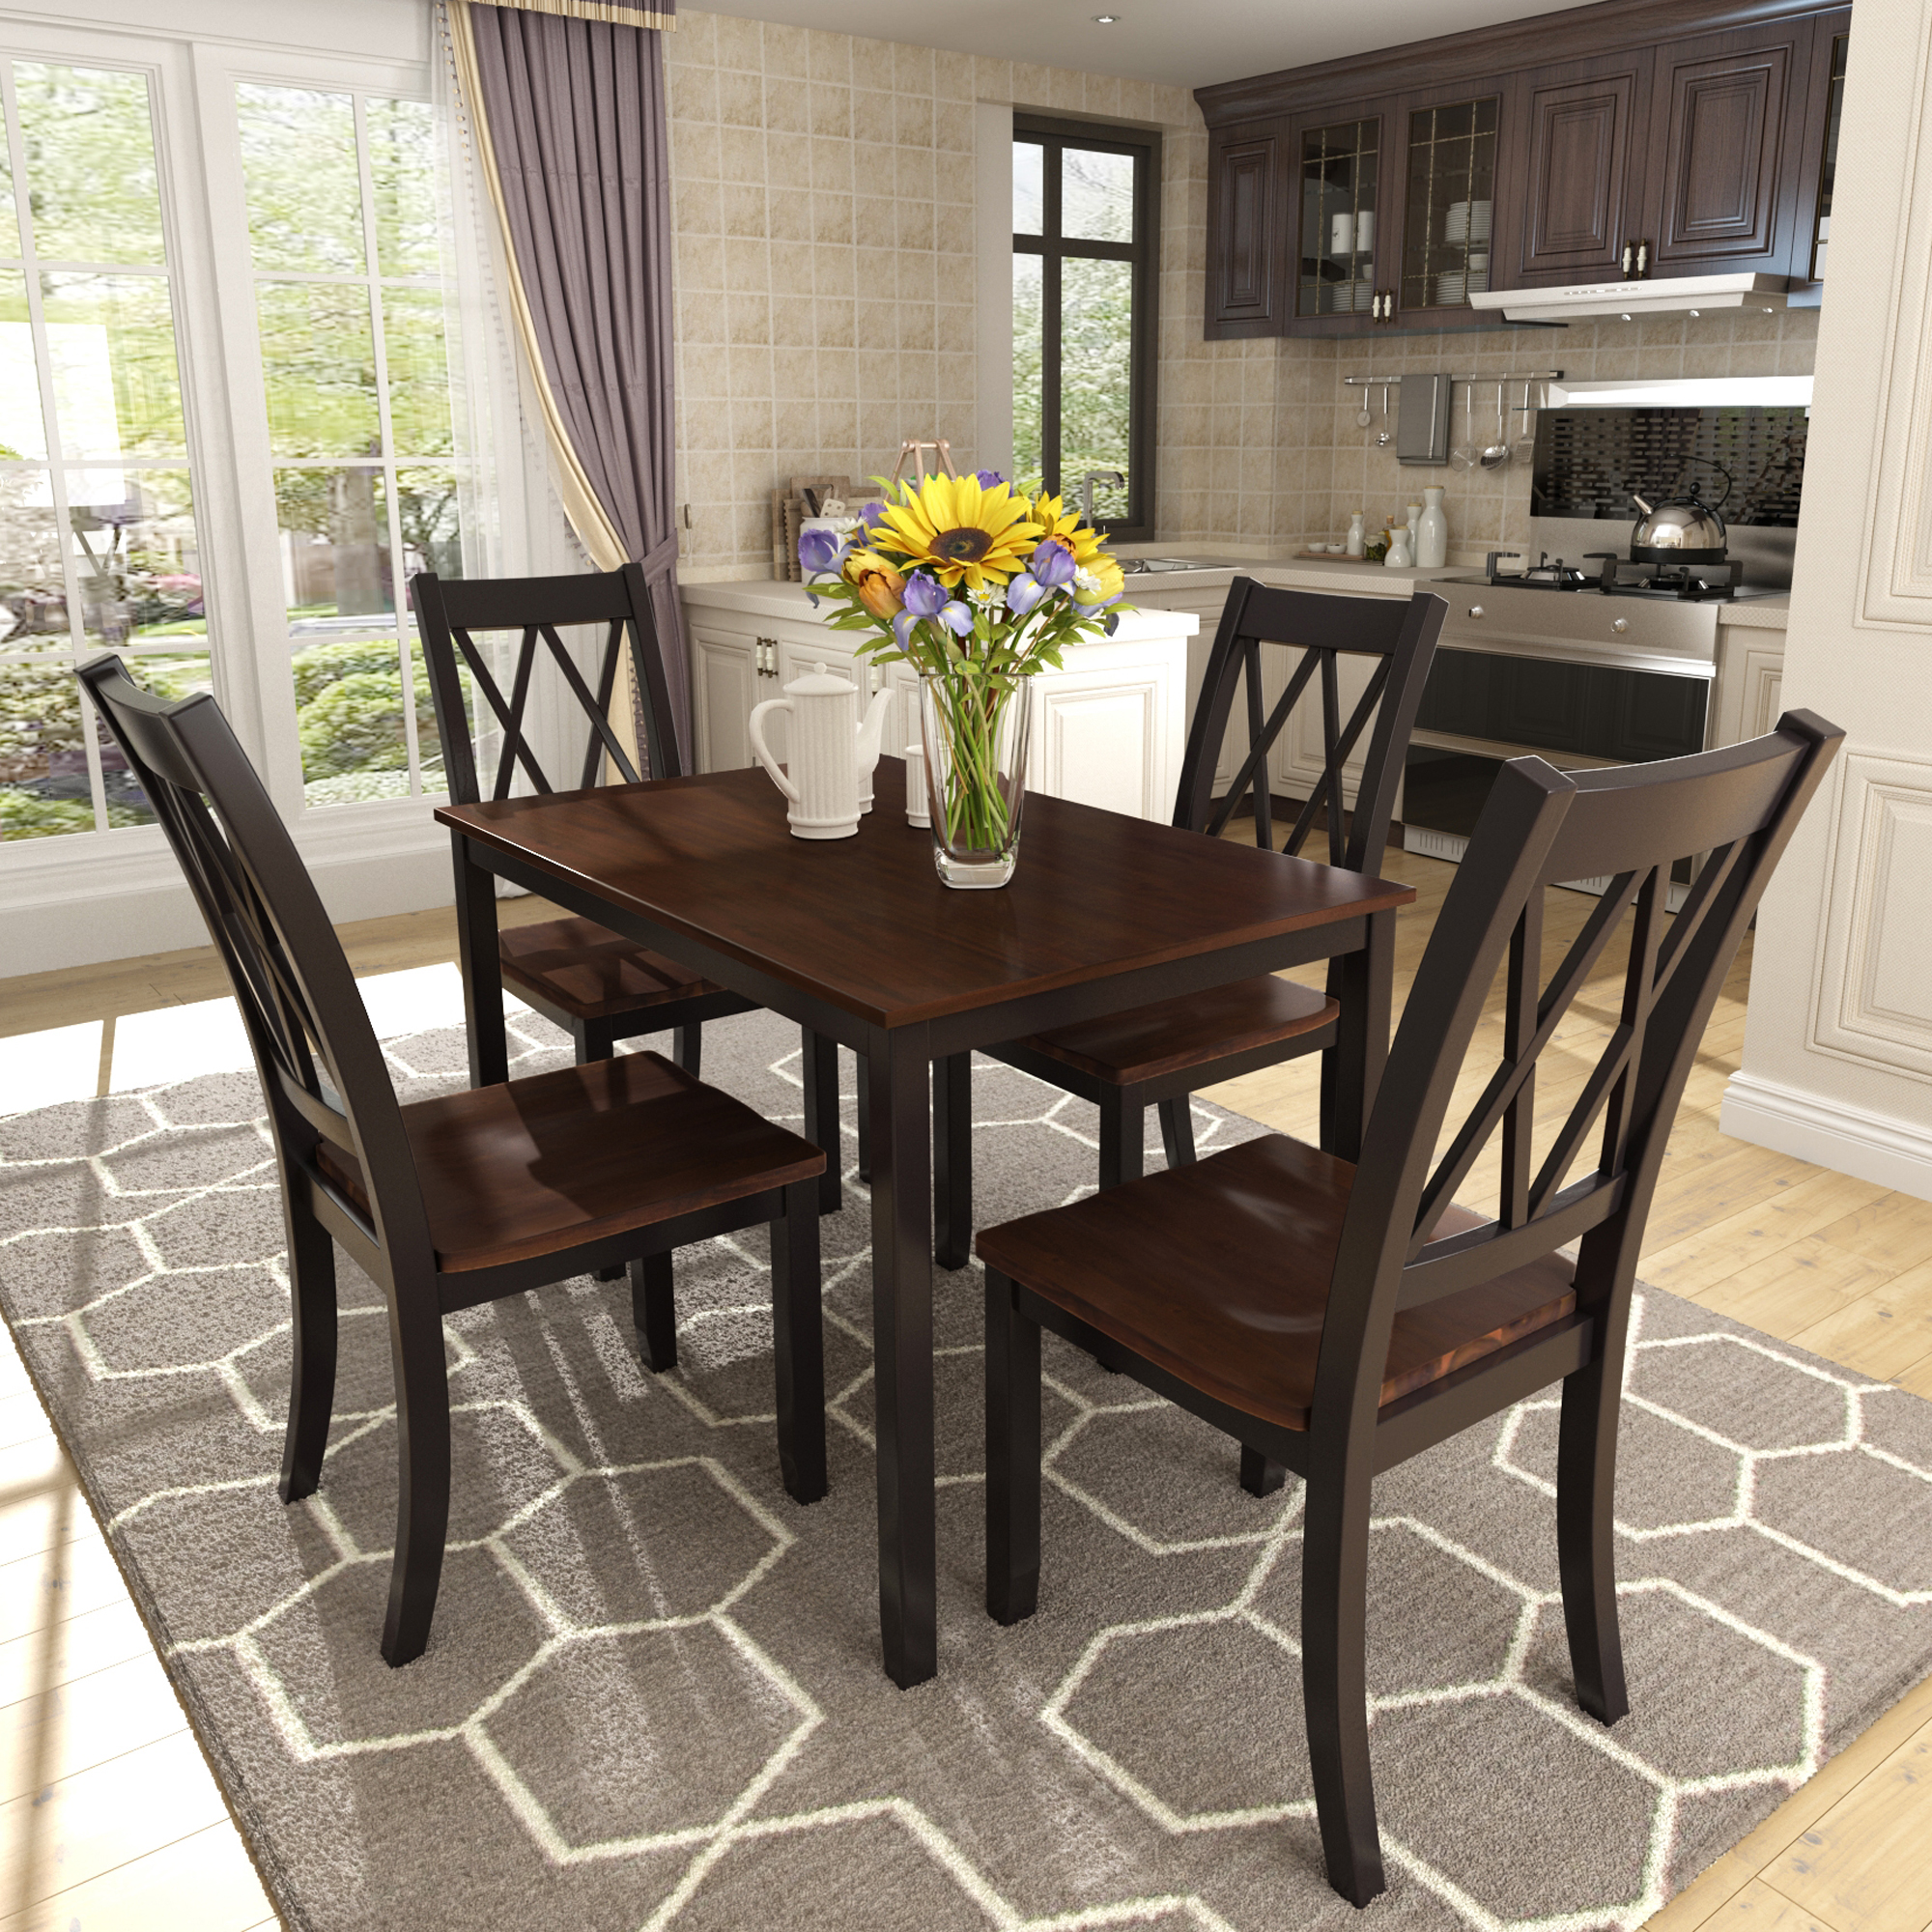 Rectangle Dining Table and Chair Set, URHOMEPRO 9 Piece Kitchen Dinette  Sets, Wood Dining Set with 9 Chairs, Modern Dining Table Set for Dining  Room, ...